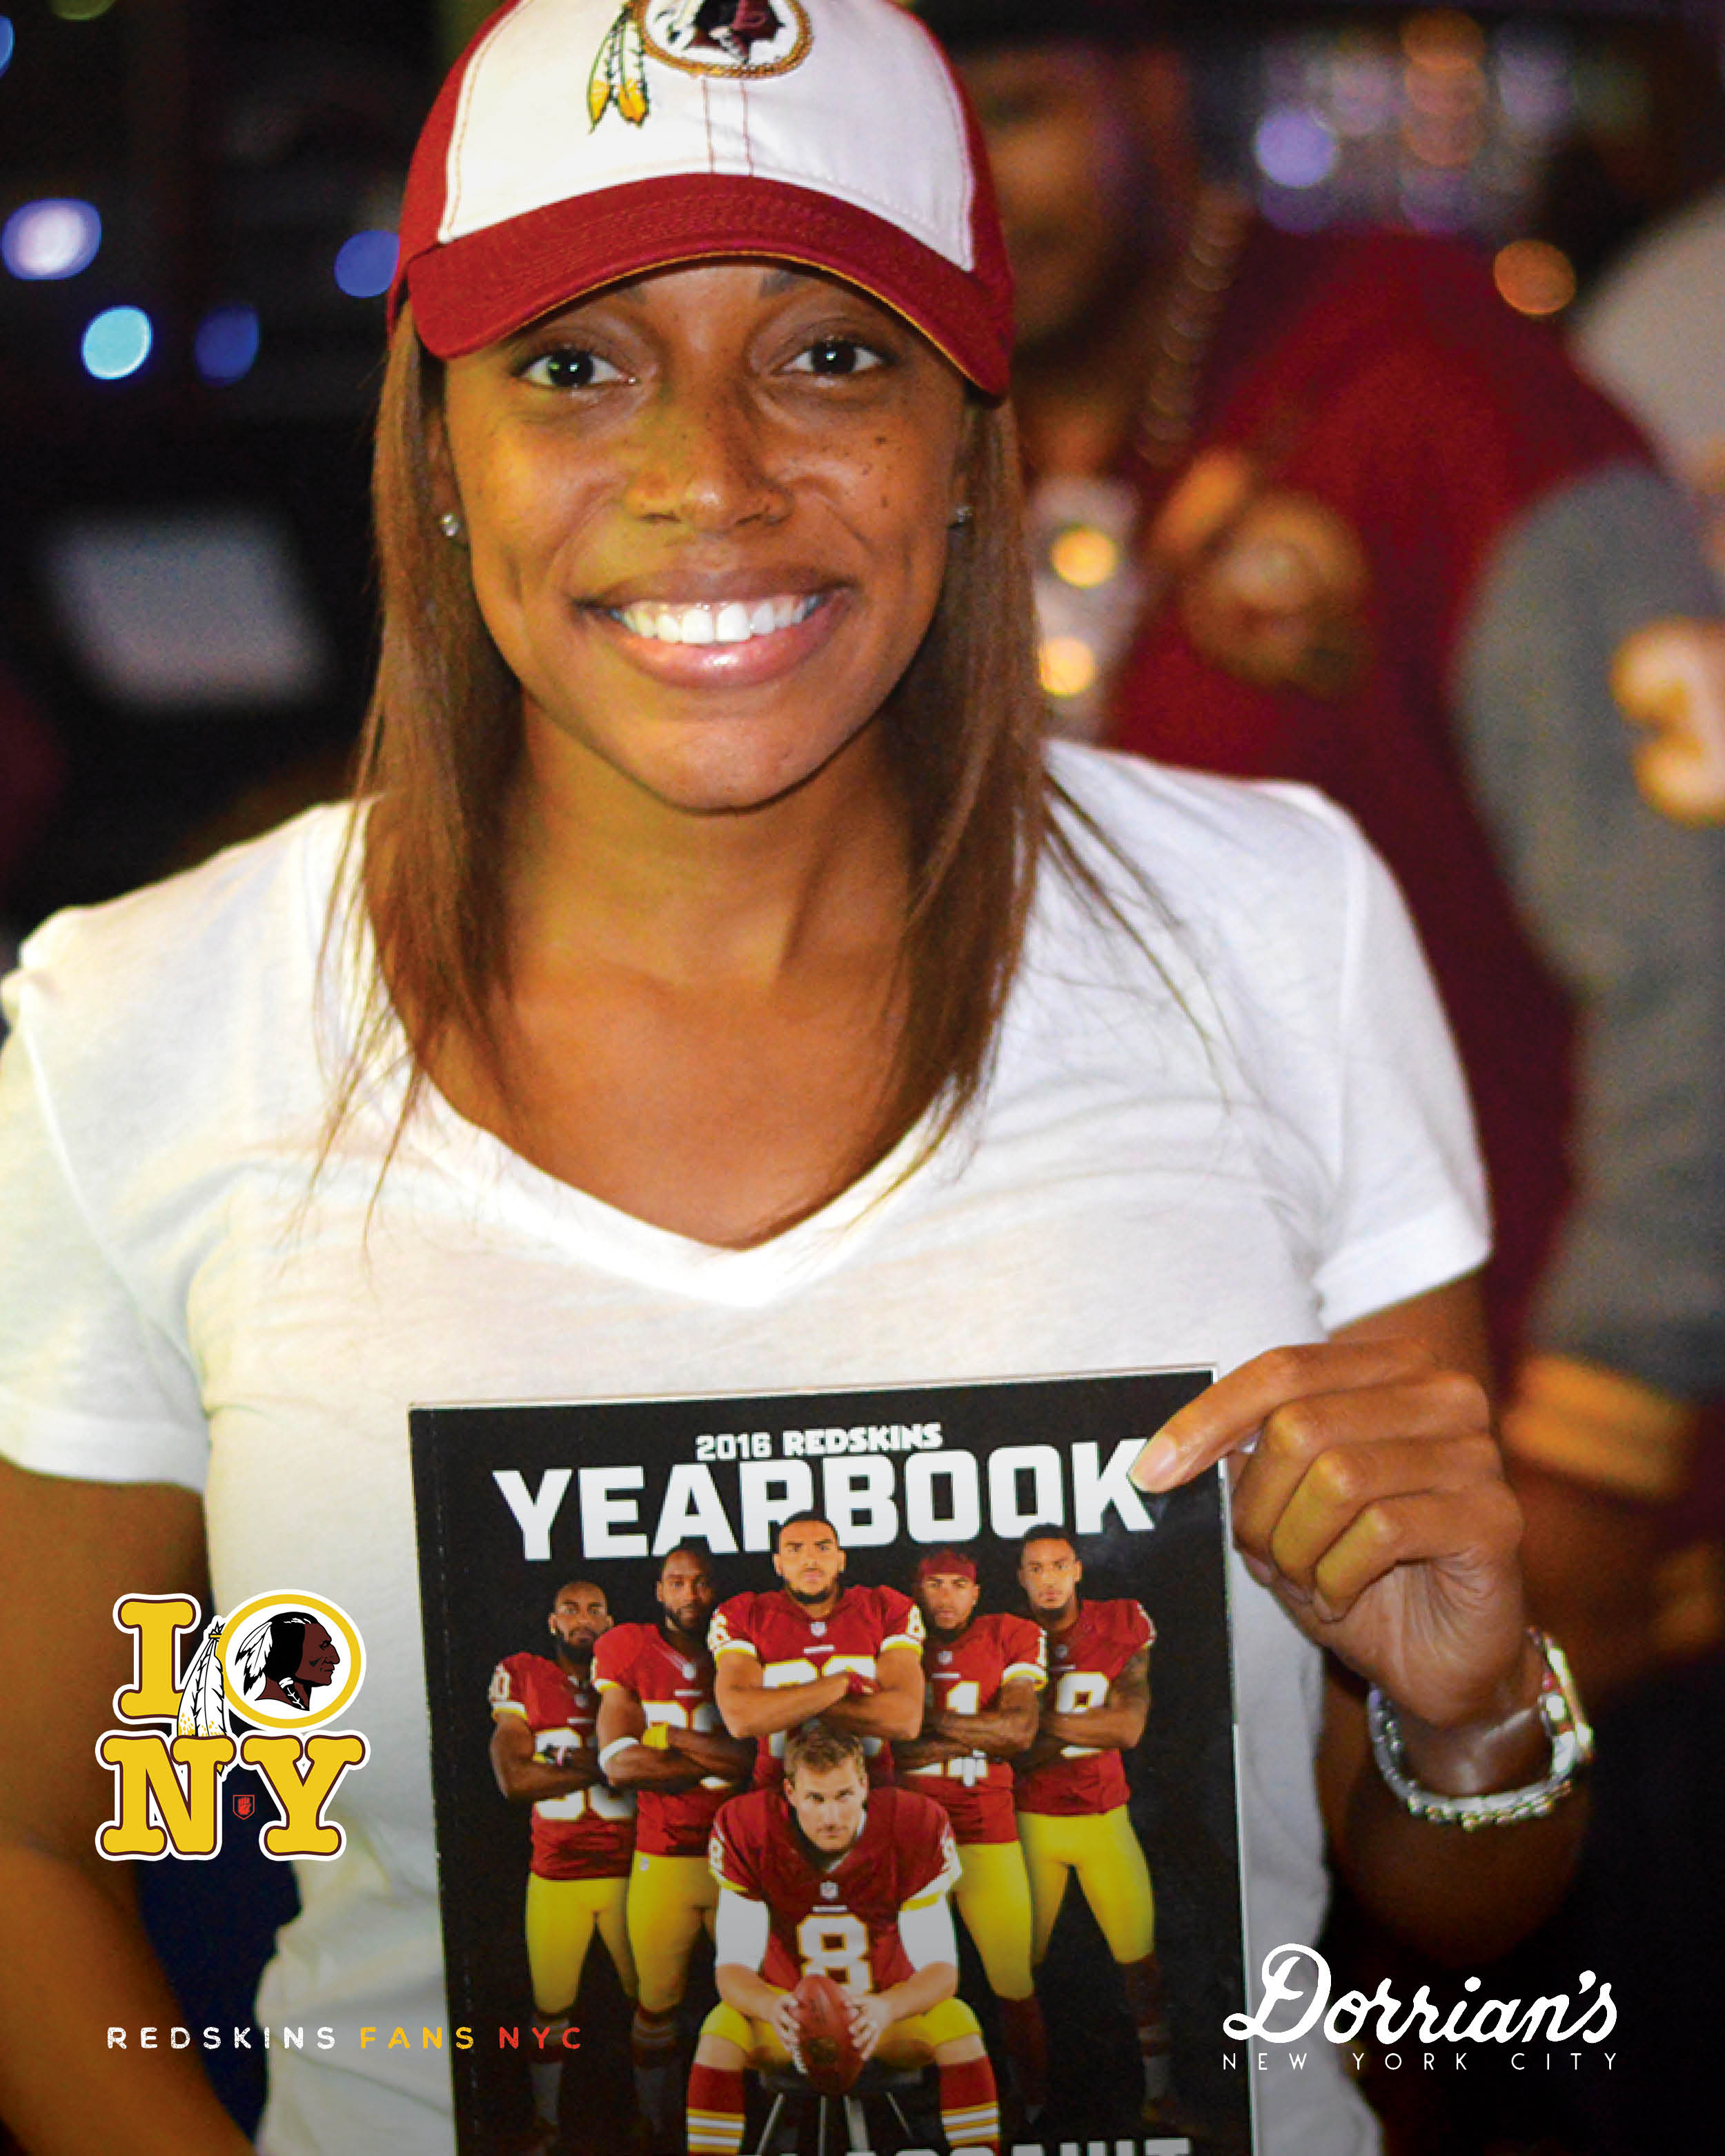 drh_nyc-2018-insta-redskins-imgs-road-rally-series-.jpg